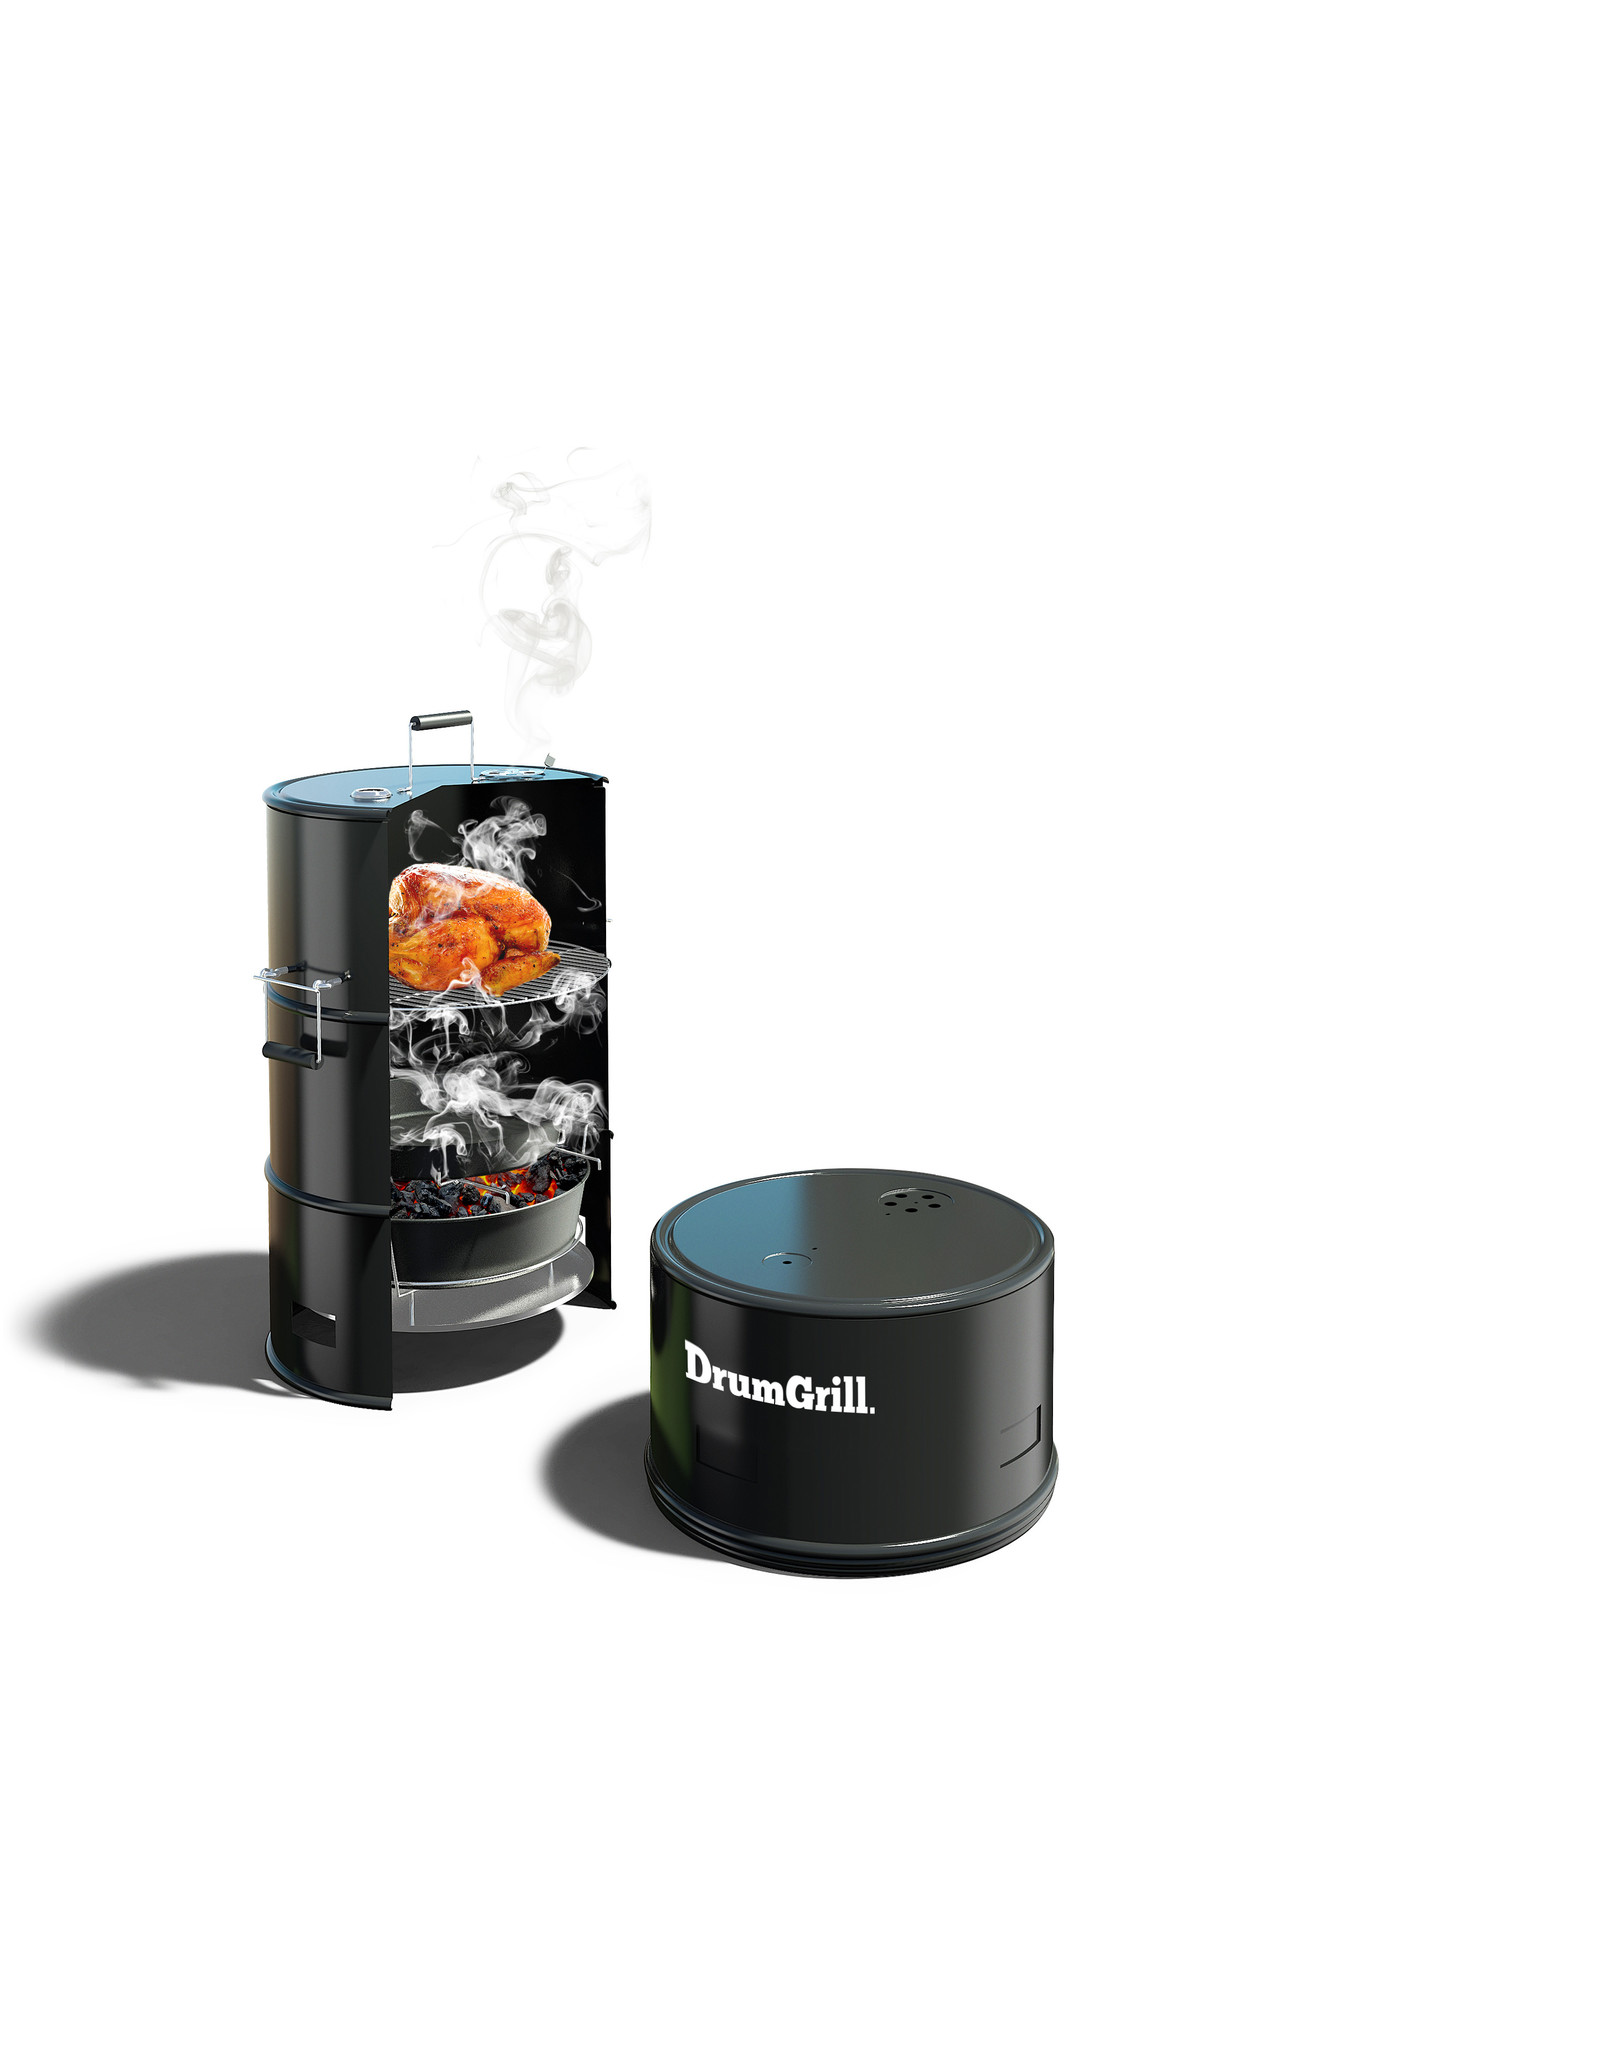 DrumGrill Drumgrill Smoker barbecue